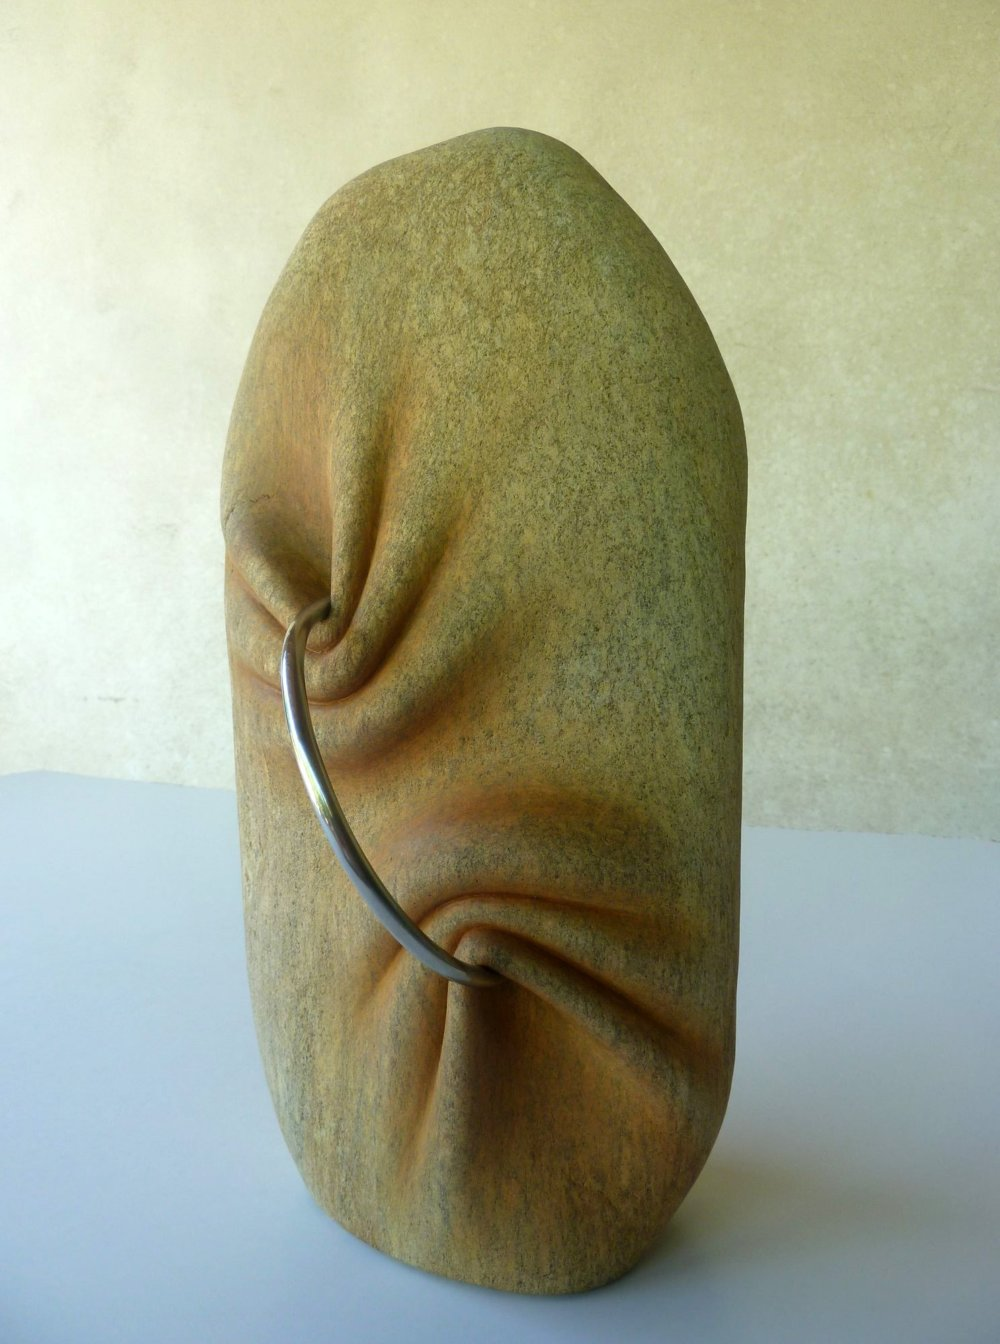 Extraordinary Hand Carved Stone Sculptures That Look Like Theyre Made Of Soft Putty By Jose Manuel Castro Lopez 1